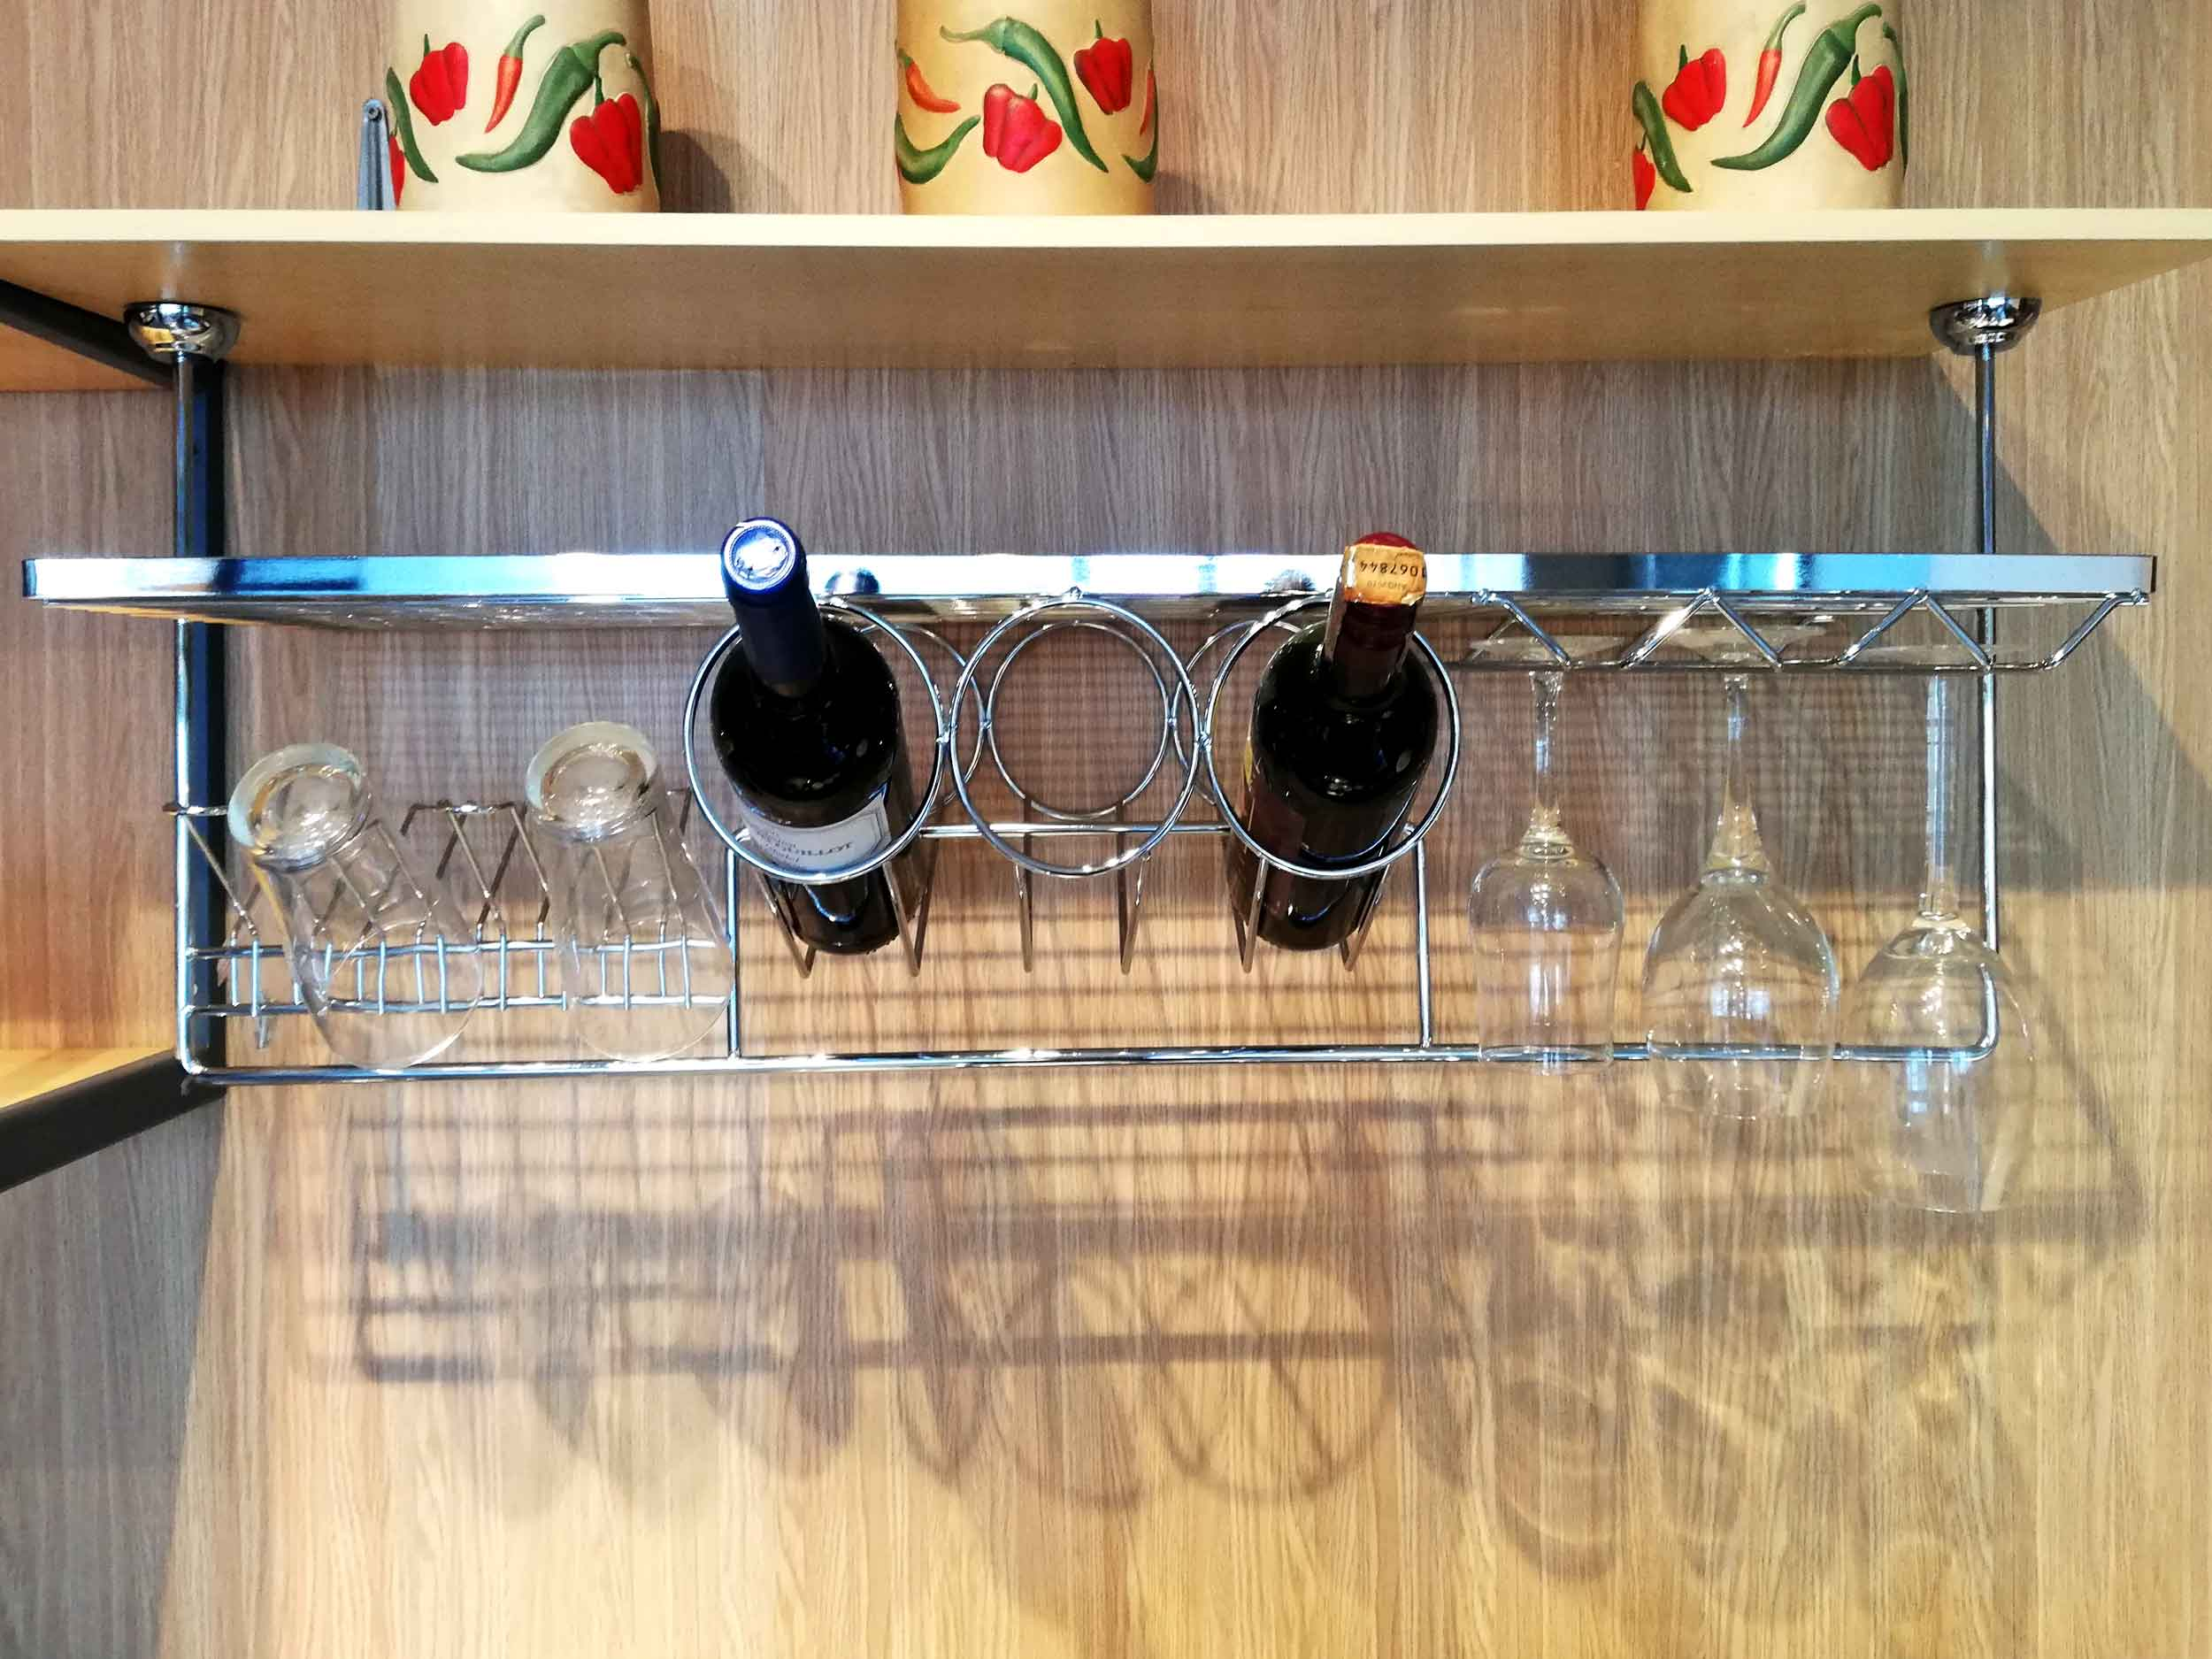 Splash-Kit-Hanging-Wine-Cellar